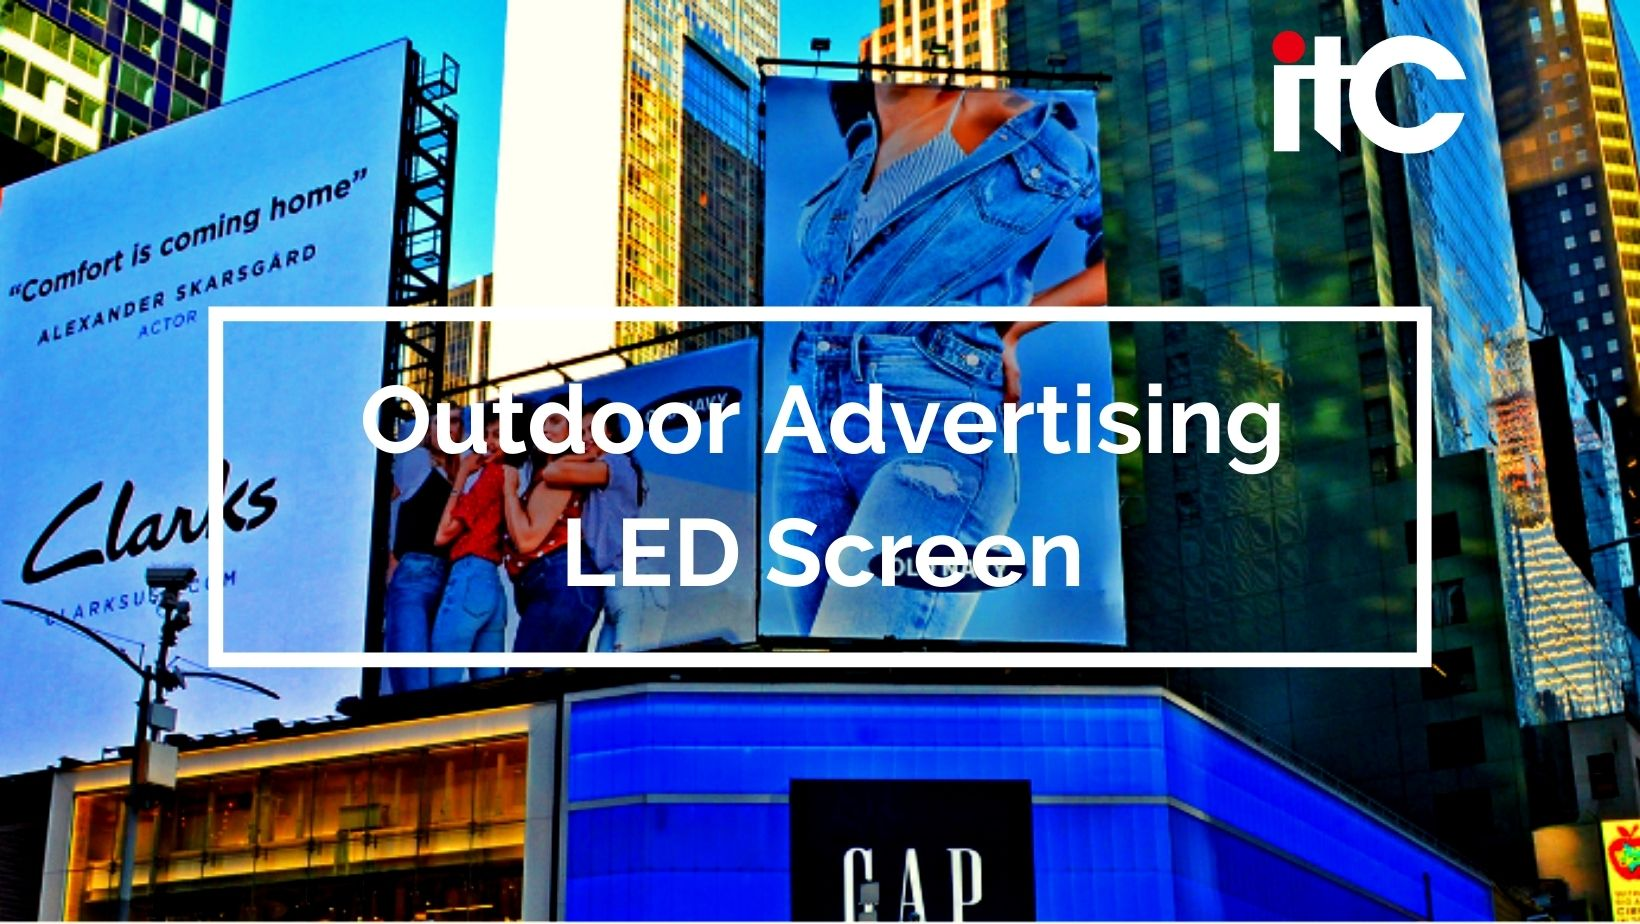 The unique value of LED screens for outdoor advertising